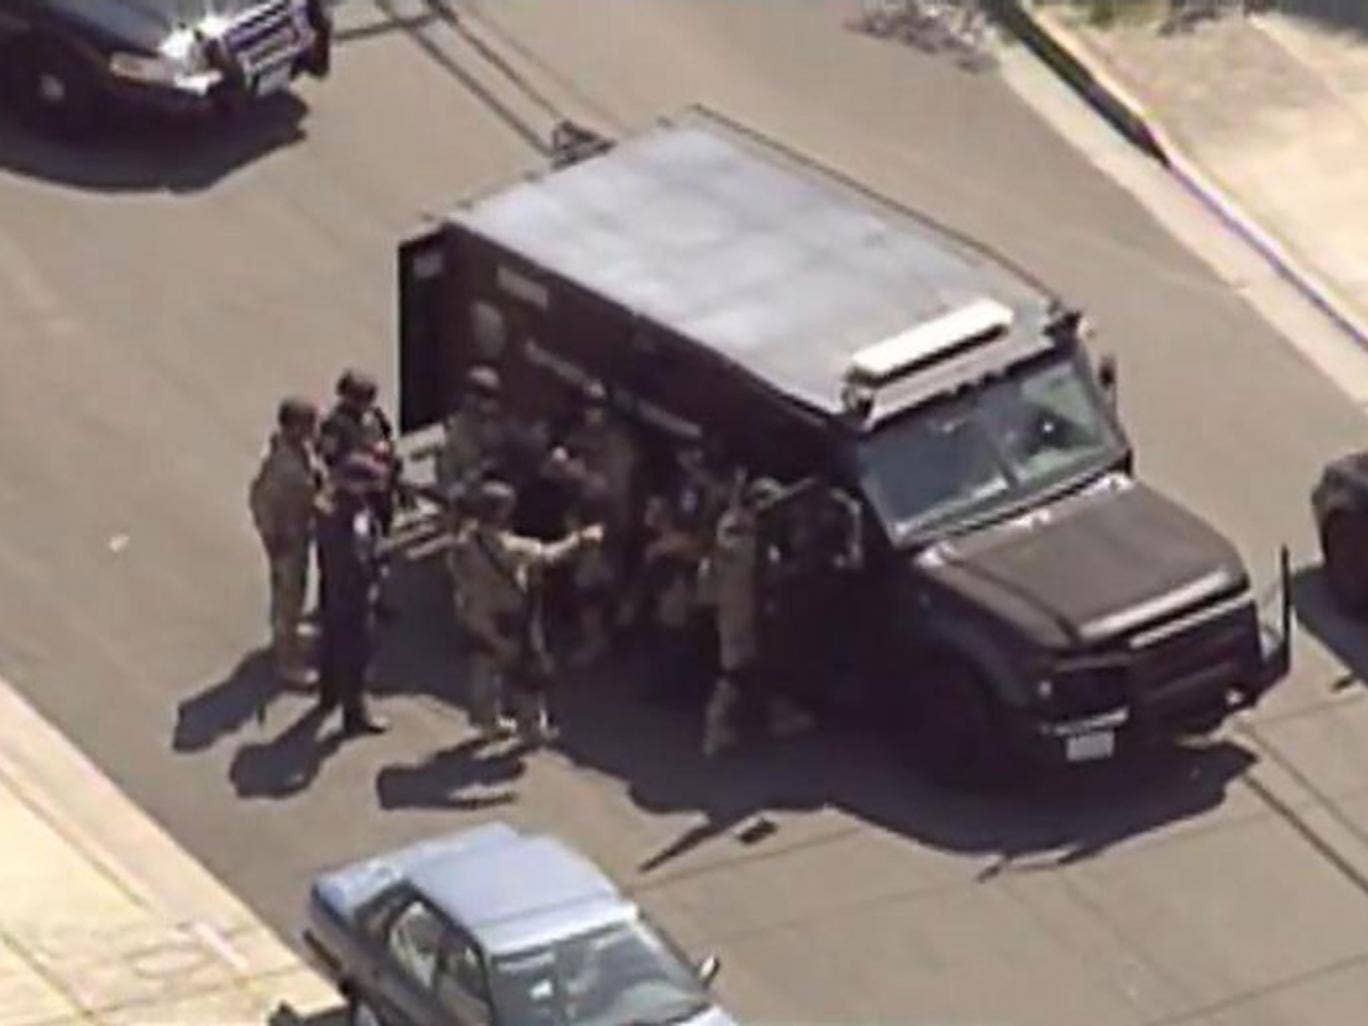 The SWAT team outside of the property in Hayward